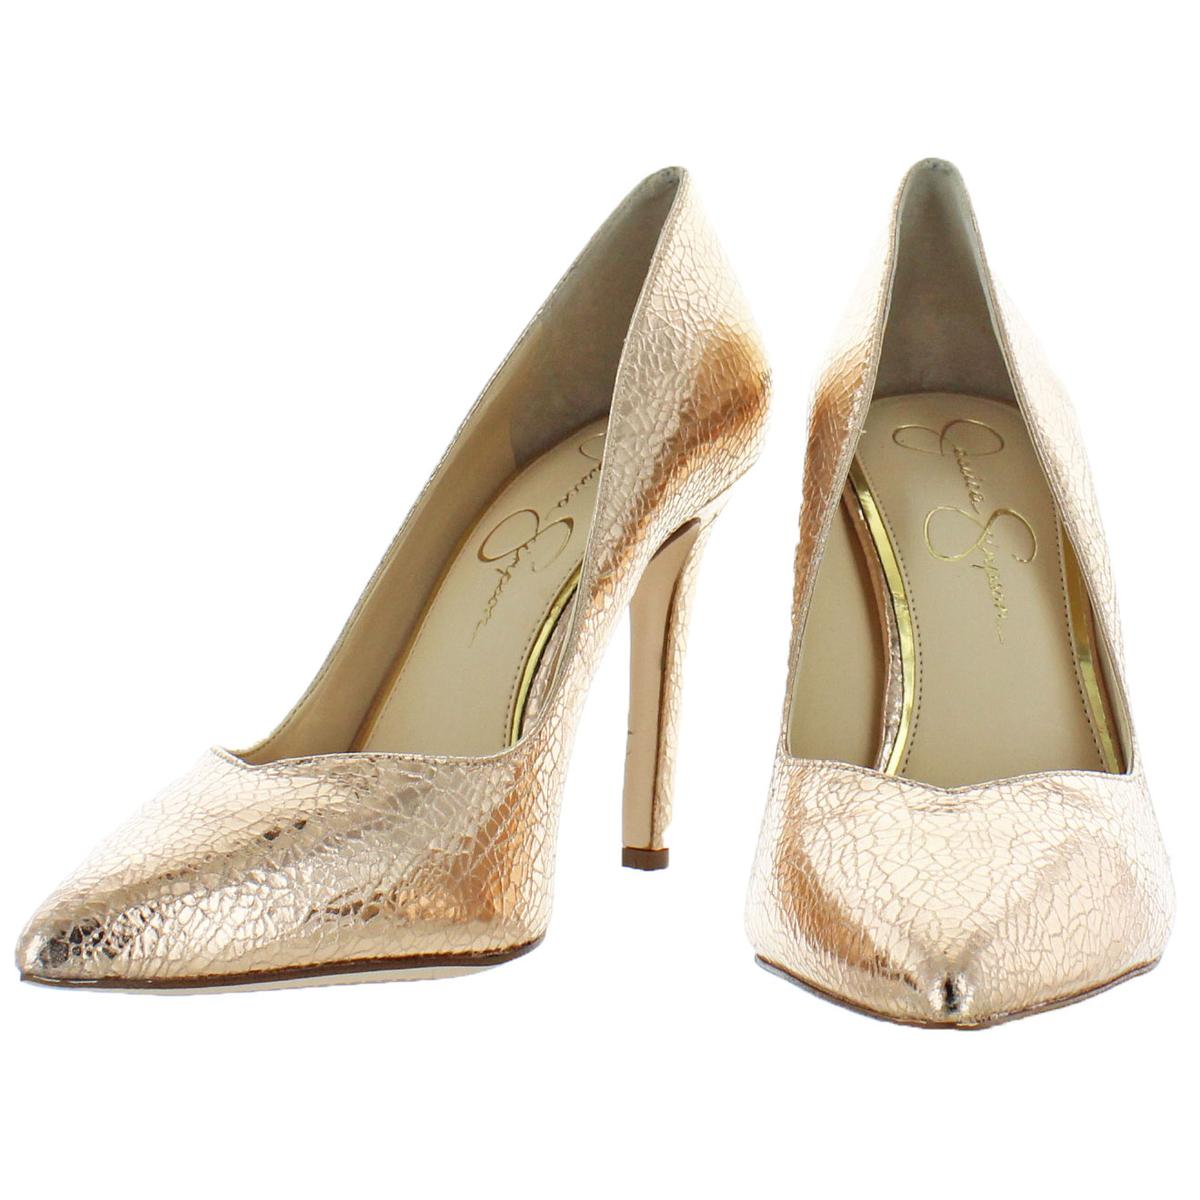 Jessica-Simpson-Women-039-s-Cylvie-Metallic-V-Cut-Classic-Pumps-Heels-Shoes thumbnail 4